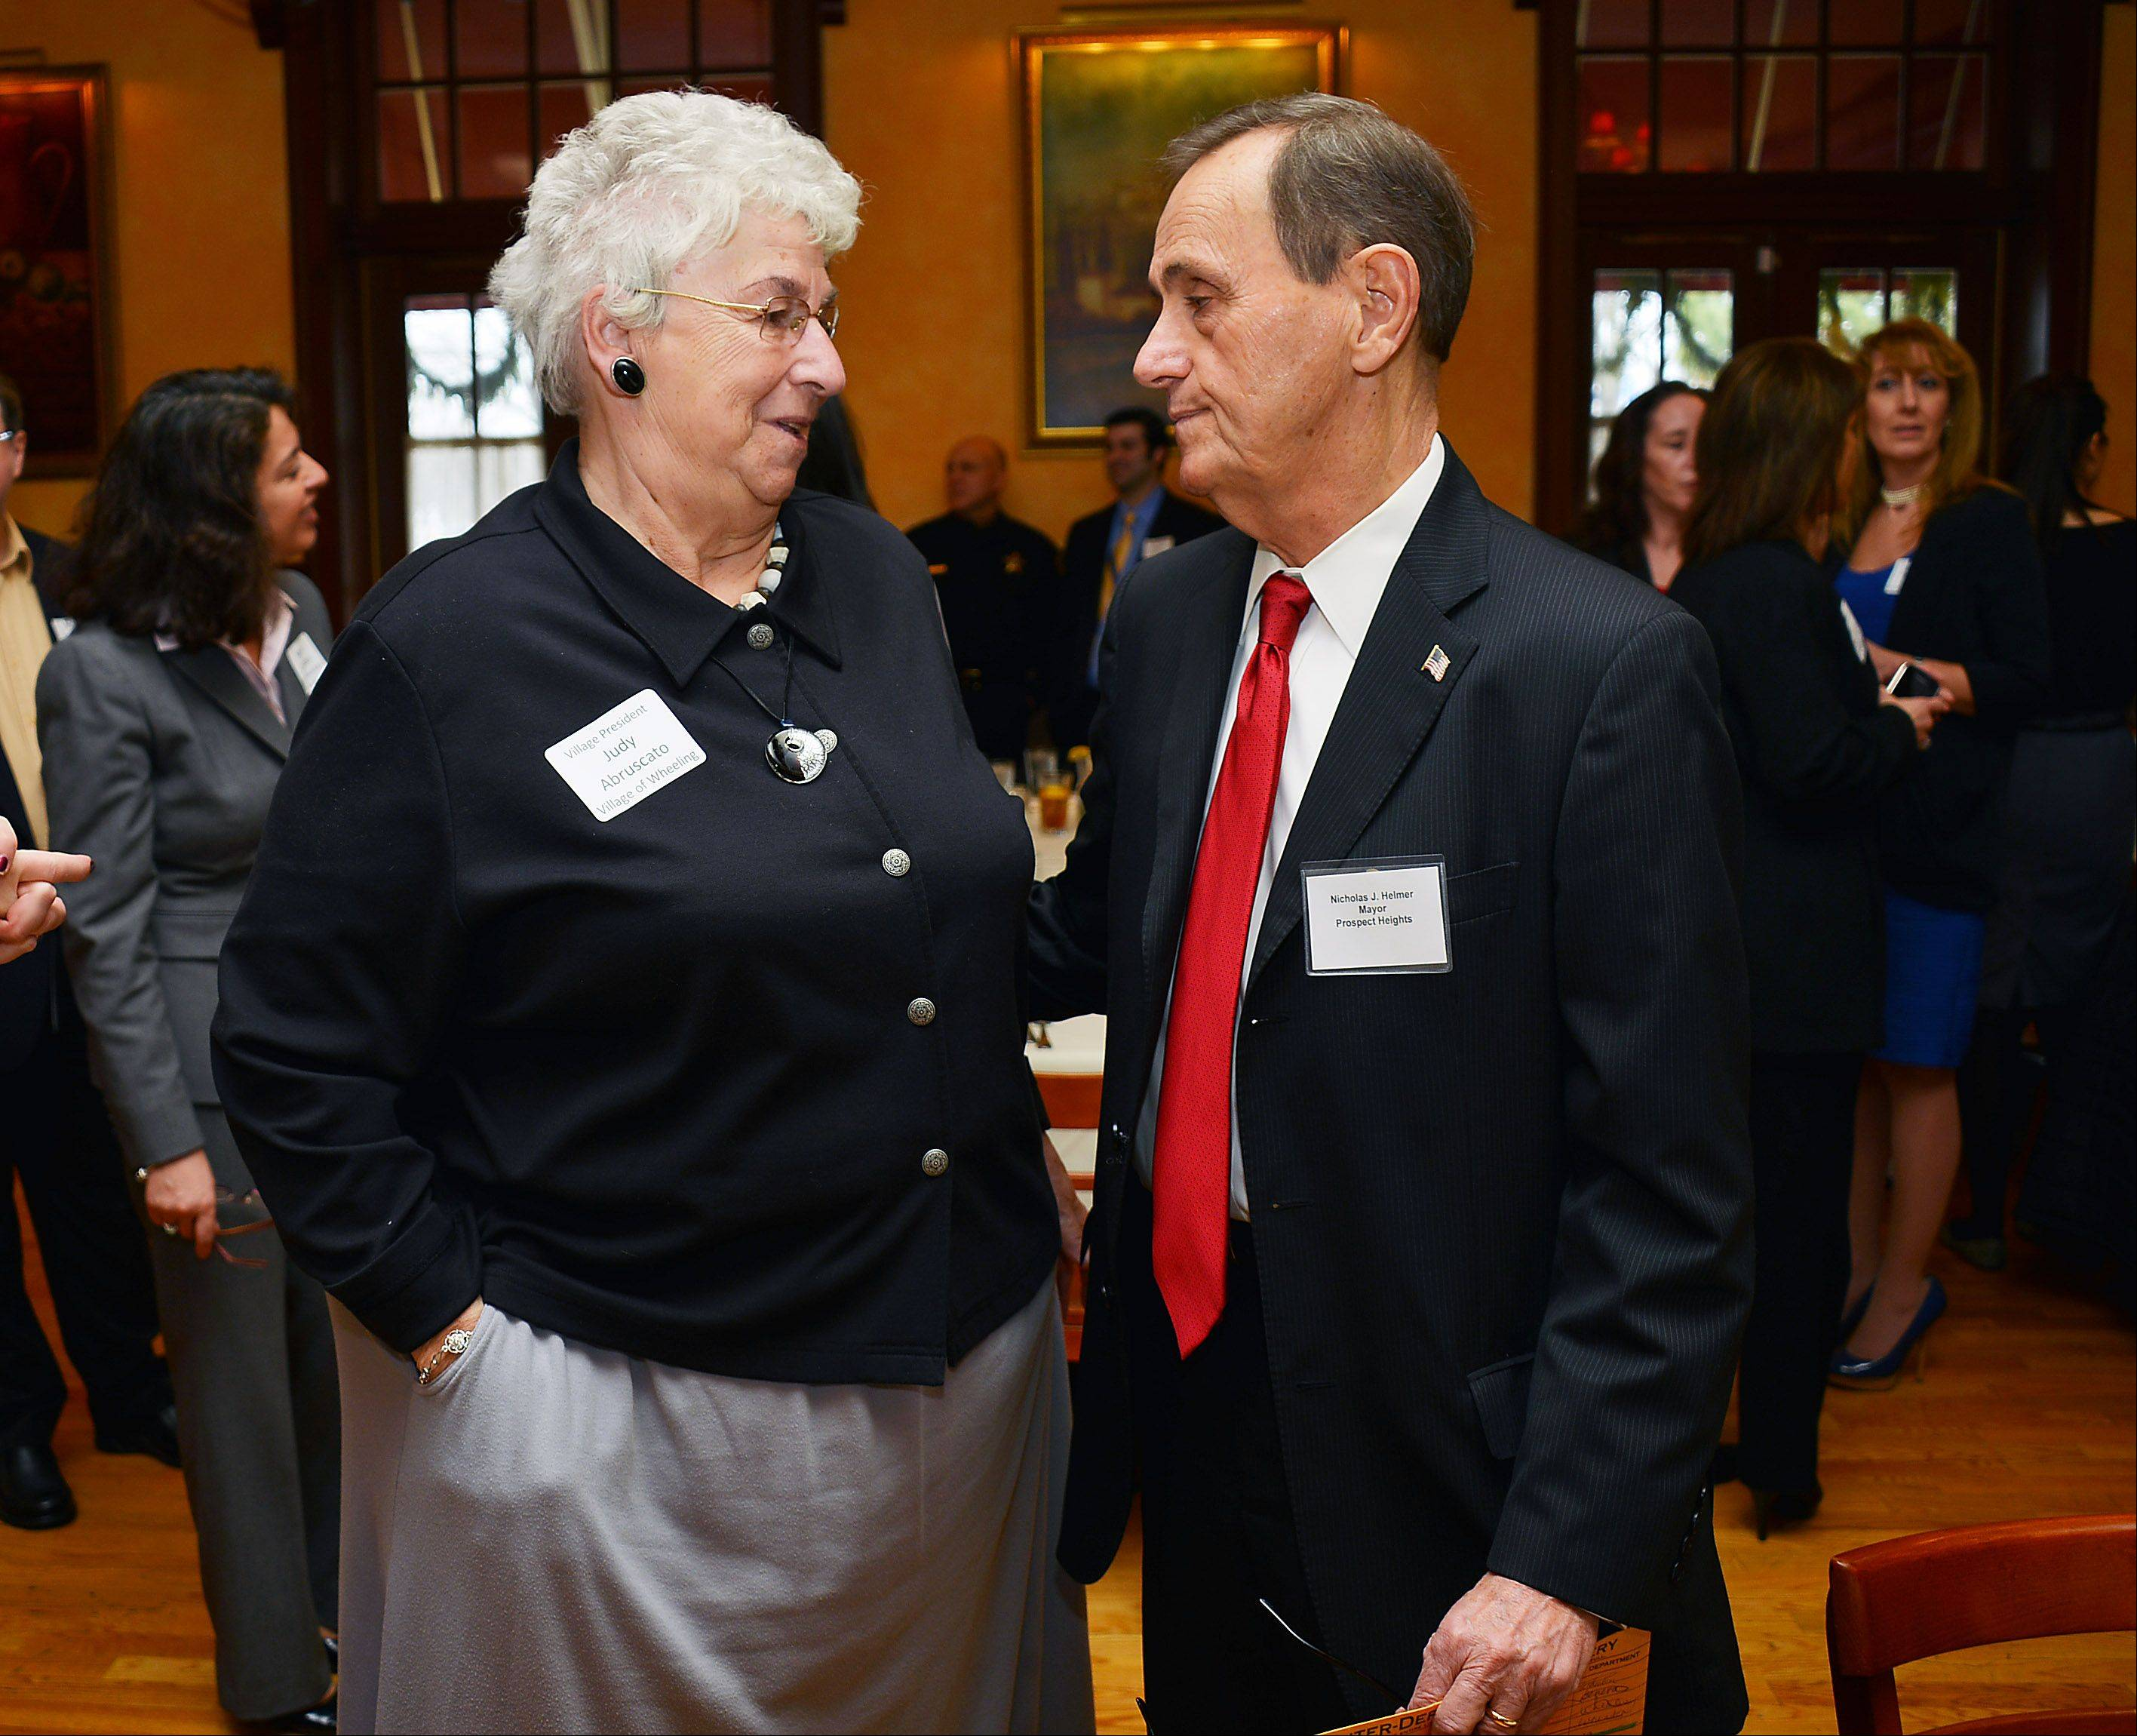 Judy Abruscato, Wheeling village president, and Nick Helmer, mayor of Prospect Heights, chat before talking to the Wheeling/Prospect Heights Area Chamber of Commerce. Both painted optimistic pictures of their local economies.